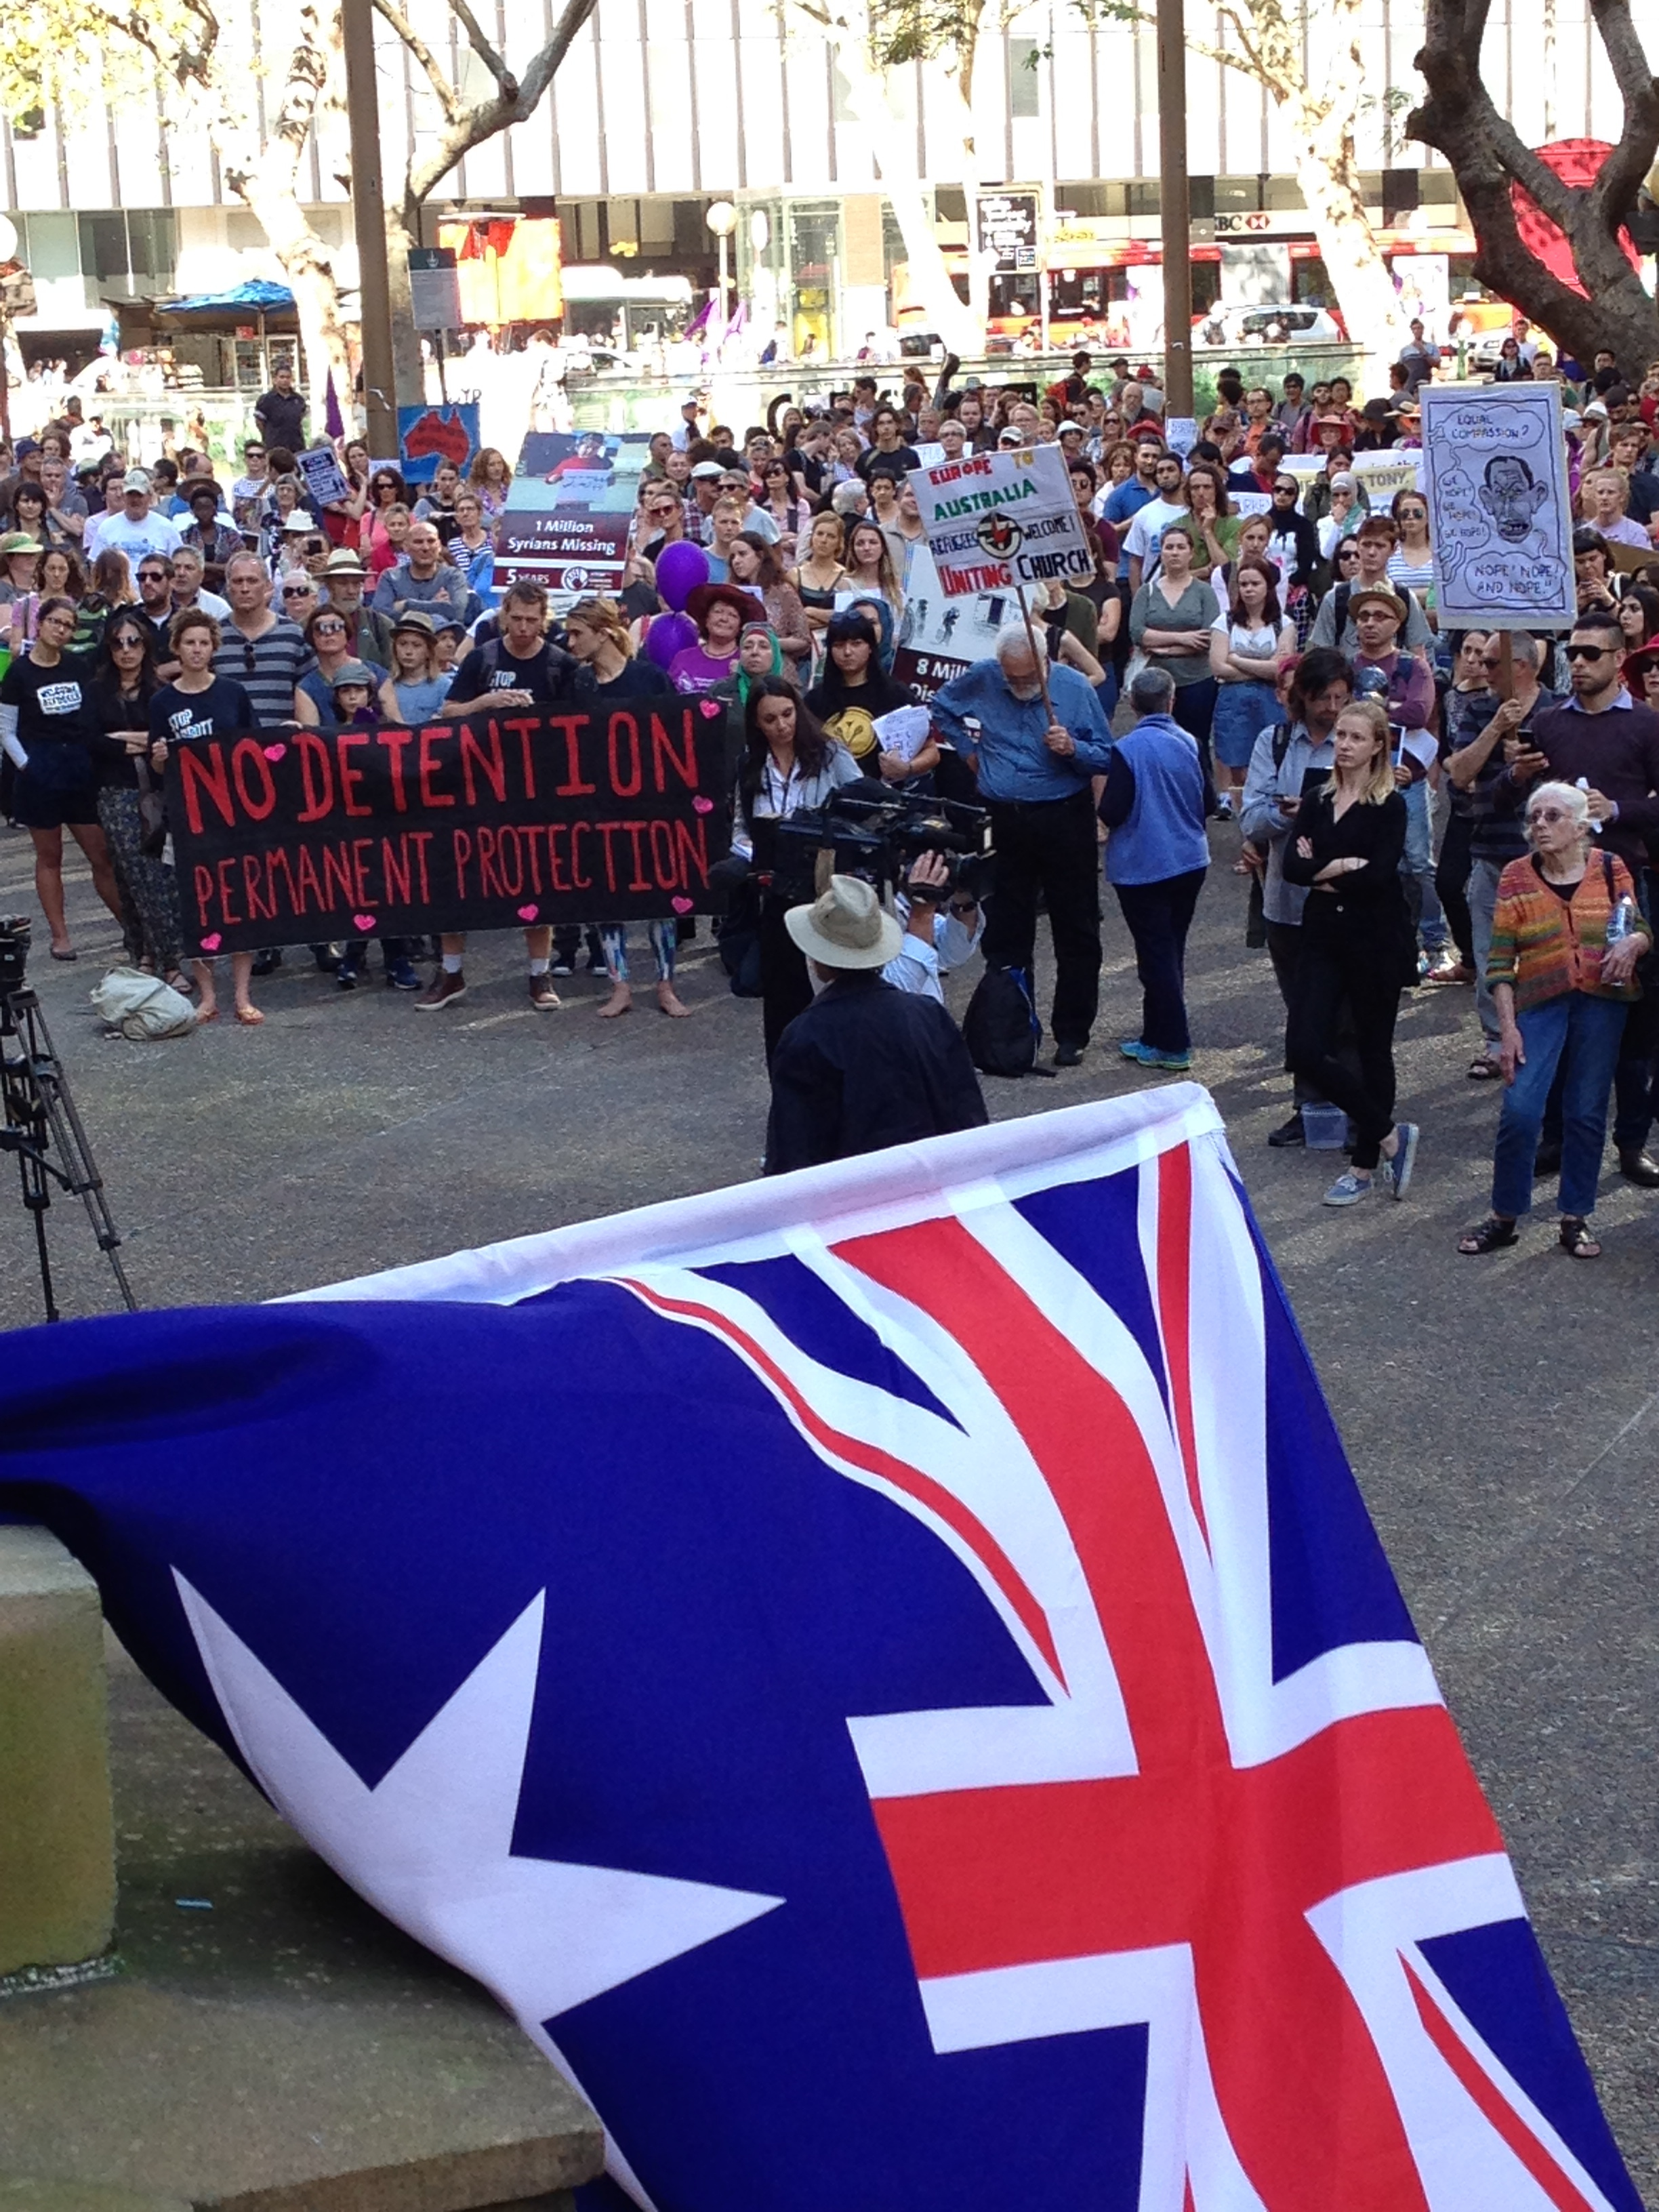 Sydney rallies to welcome refugees